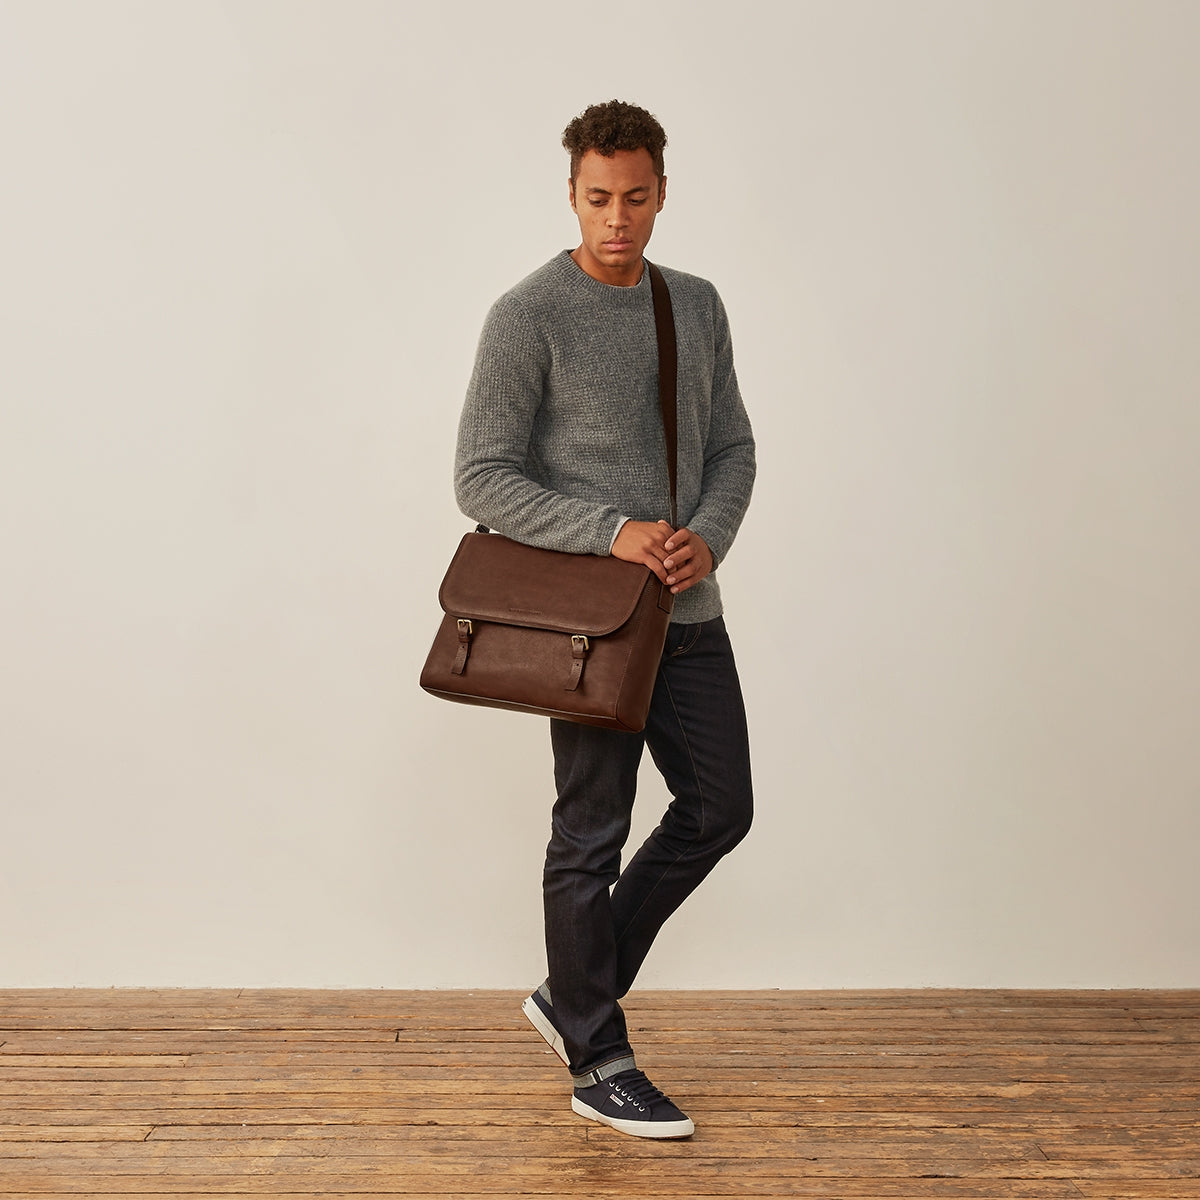 Image 8 of the 'Ravenna' Brown Leather Classic Men's Satchel Bag